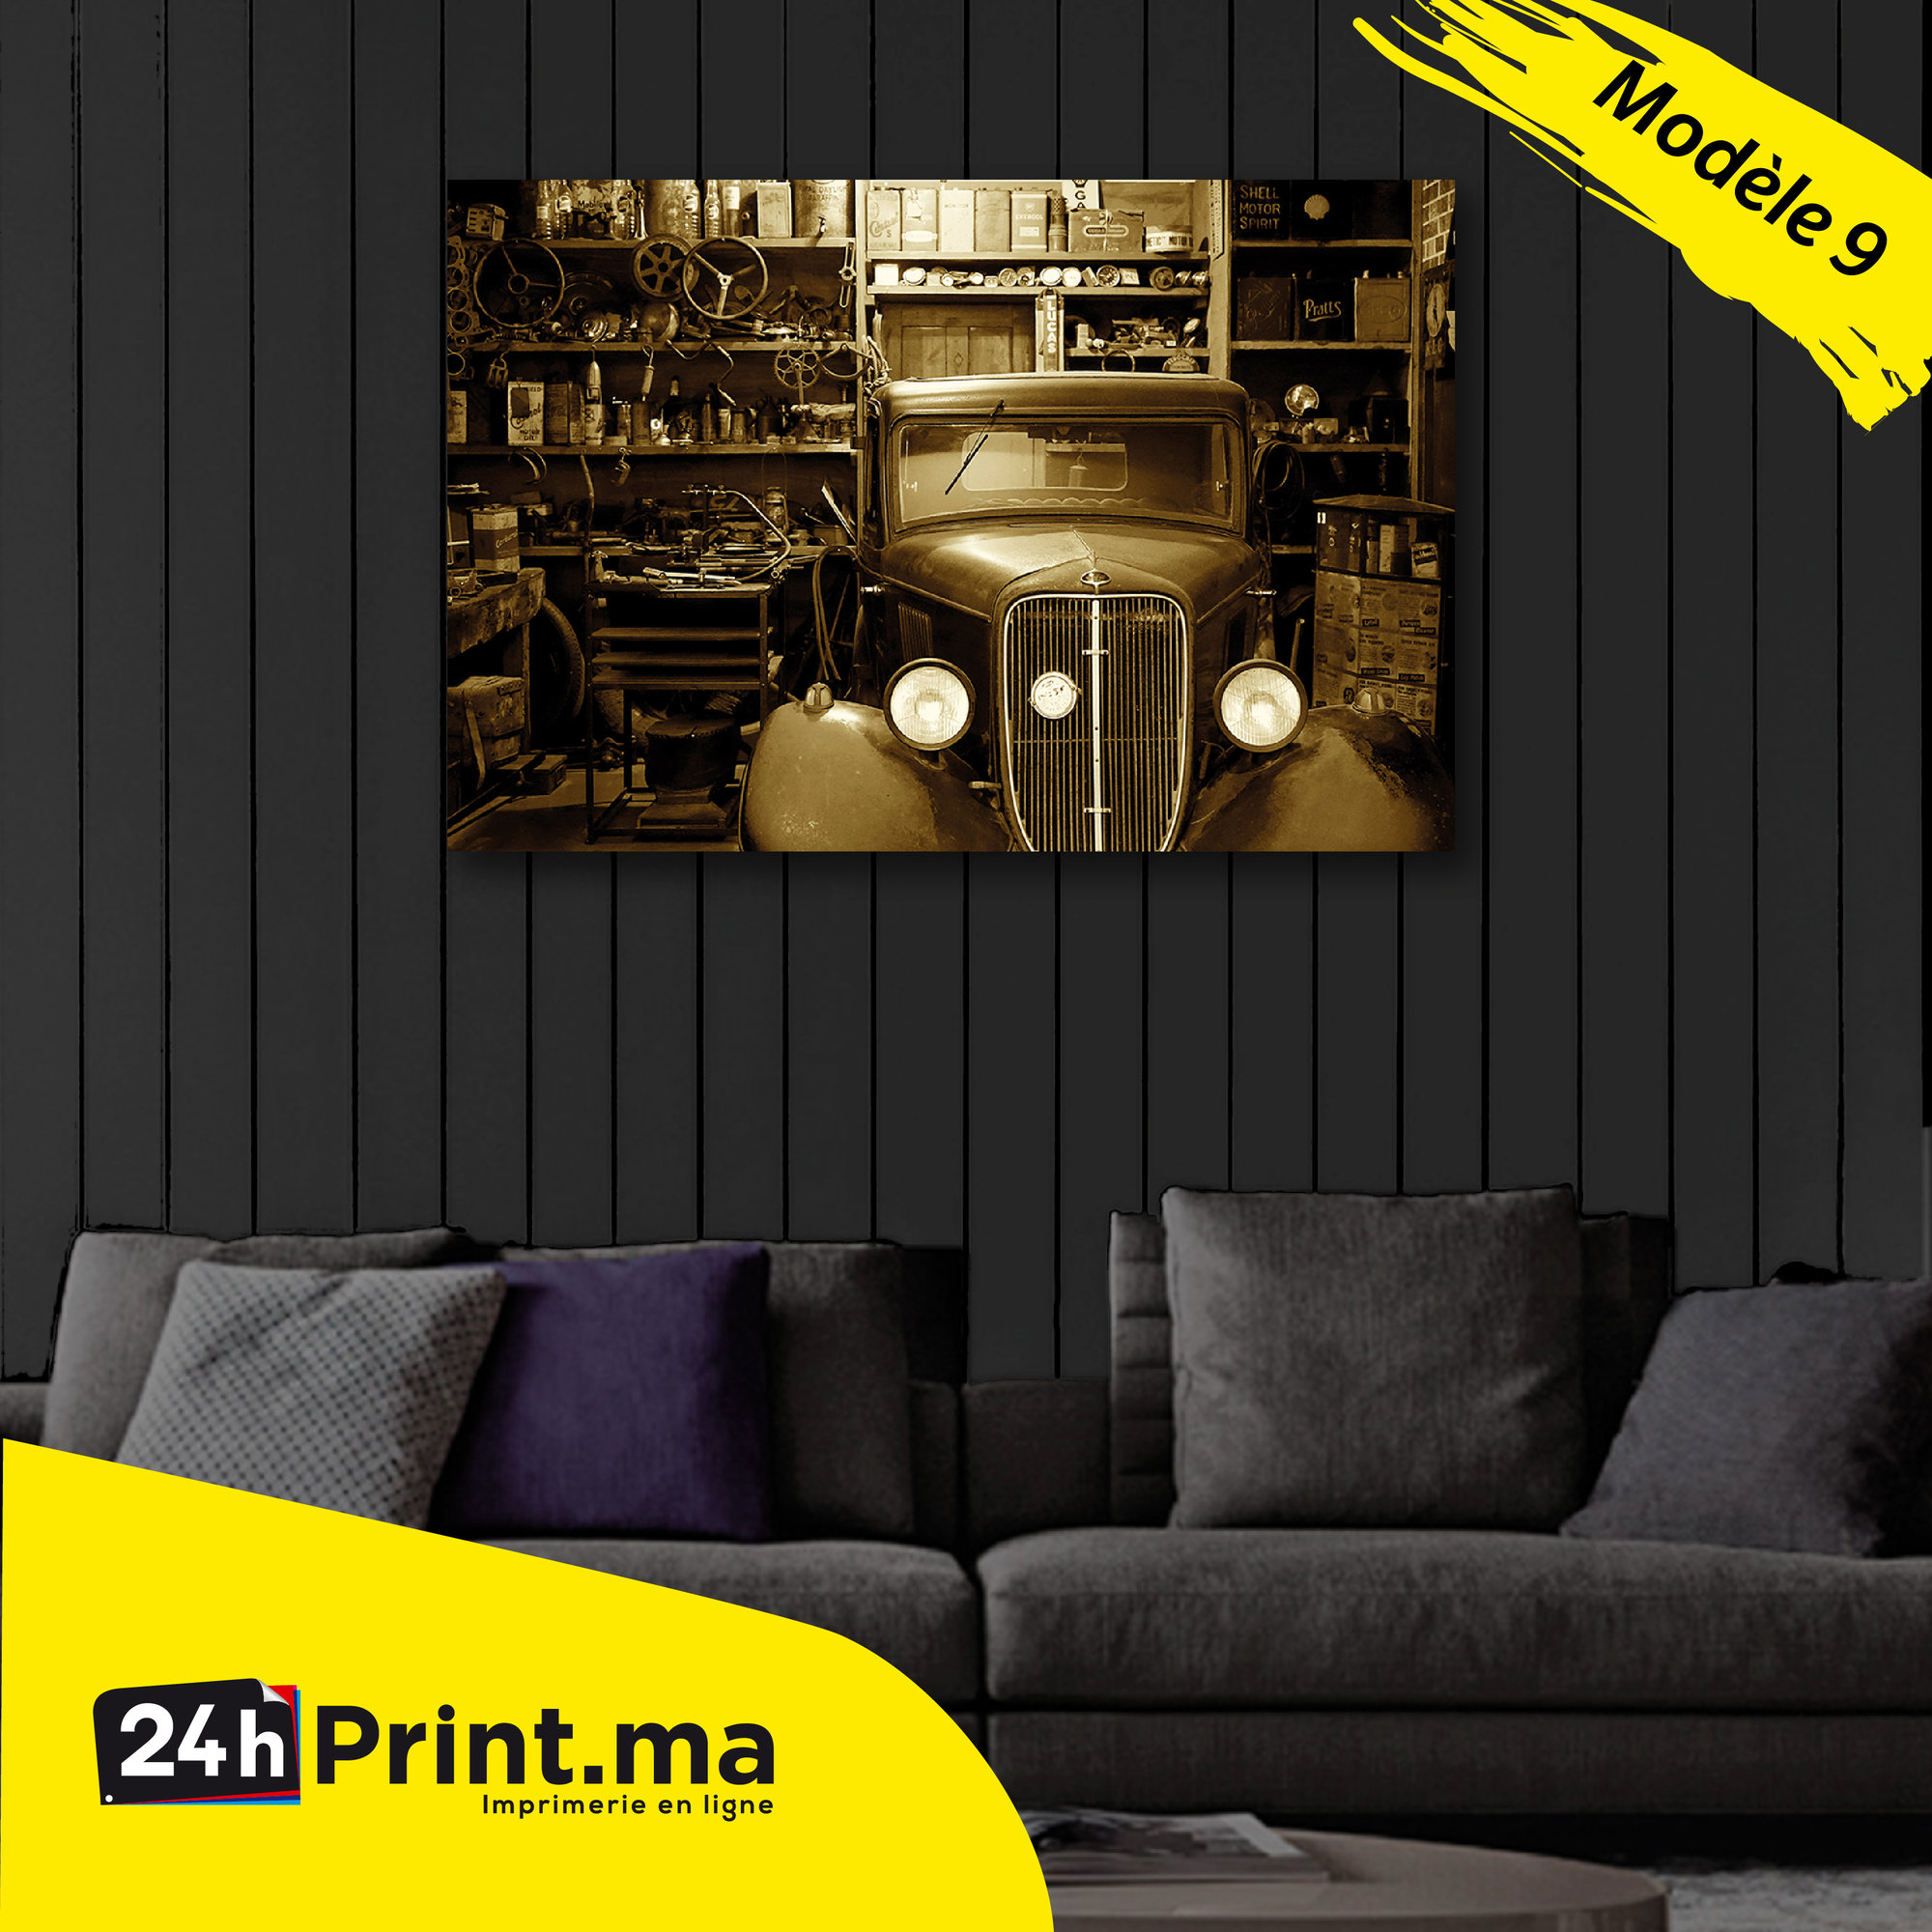 https://www.24hprint.ma/images/products_gallery_images/9-0146.jpg